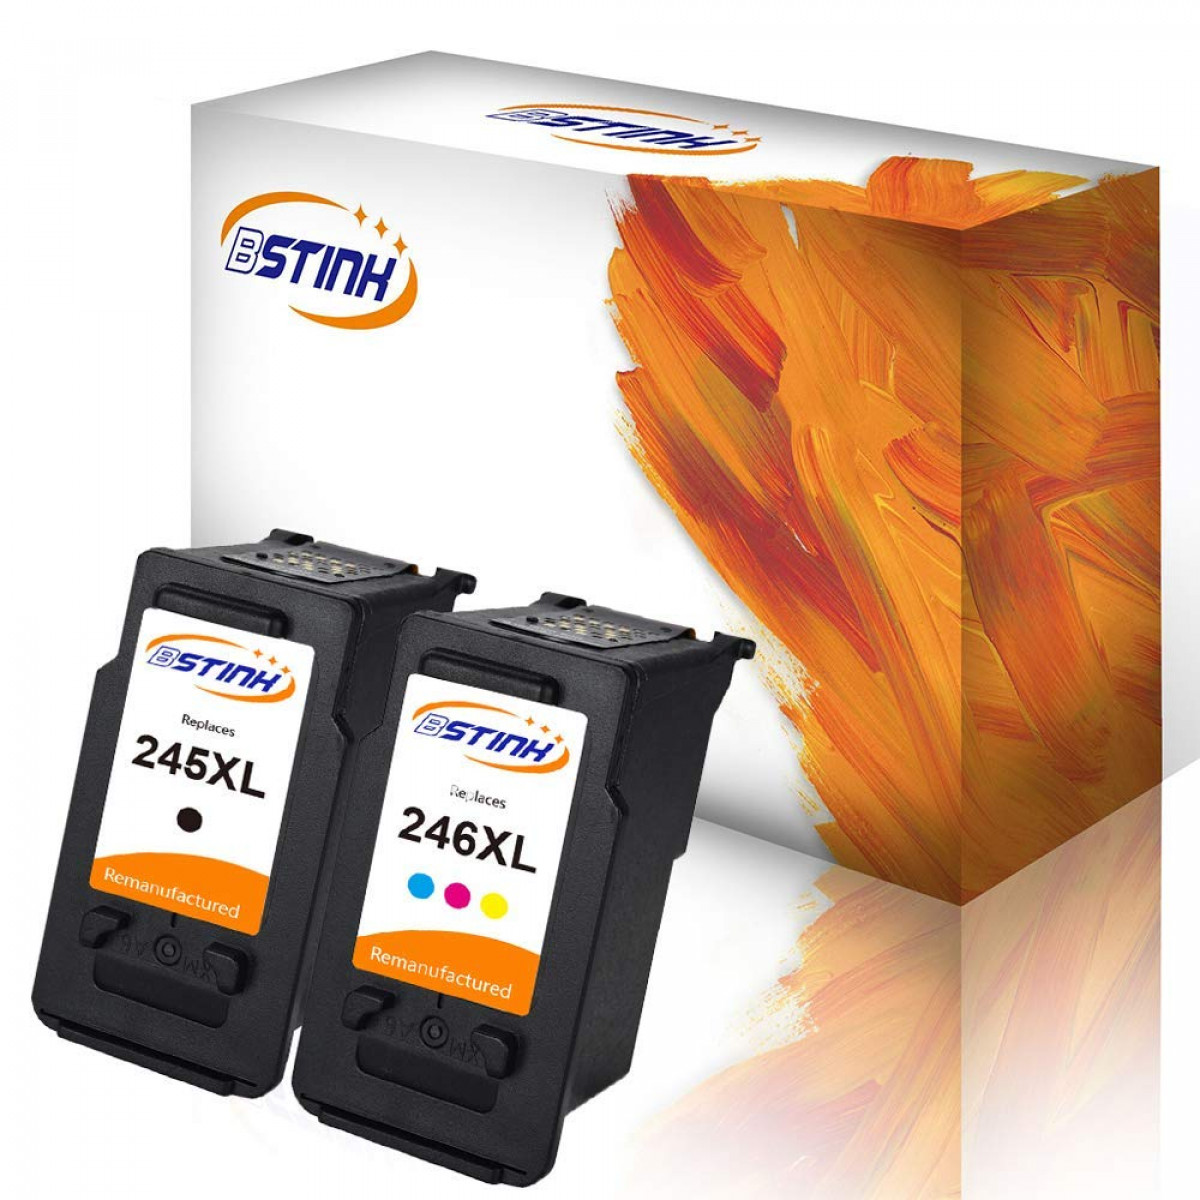 Compatible 1 X PG 245XL 1 X CL 246XL Ink for Canon MG2420 MG2520 MG2522